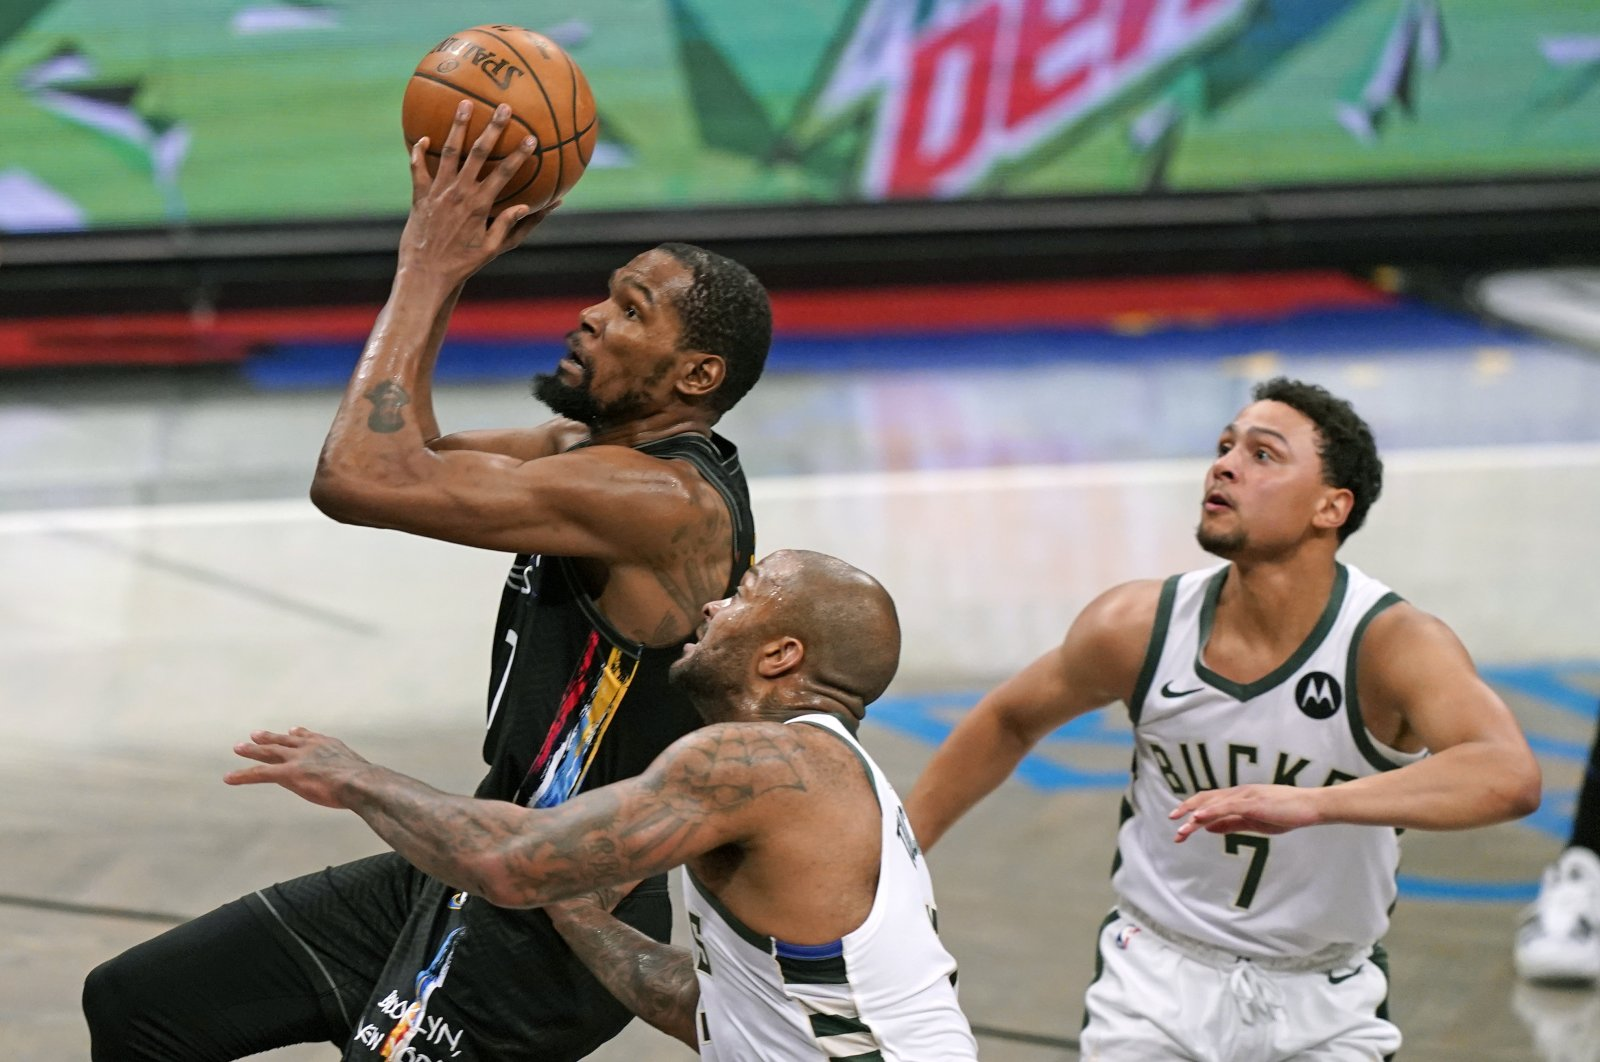 Brooklyn Nets forward Kevin Durant (L) goes up to shoot as Milwaukee Bucks forward P.J. Tucker (C) and guard Bryn Forbes (R) look on during Game 2 of their NBA second-round playoffs, June 7, 2021, New York, U.S. (AP Photo)